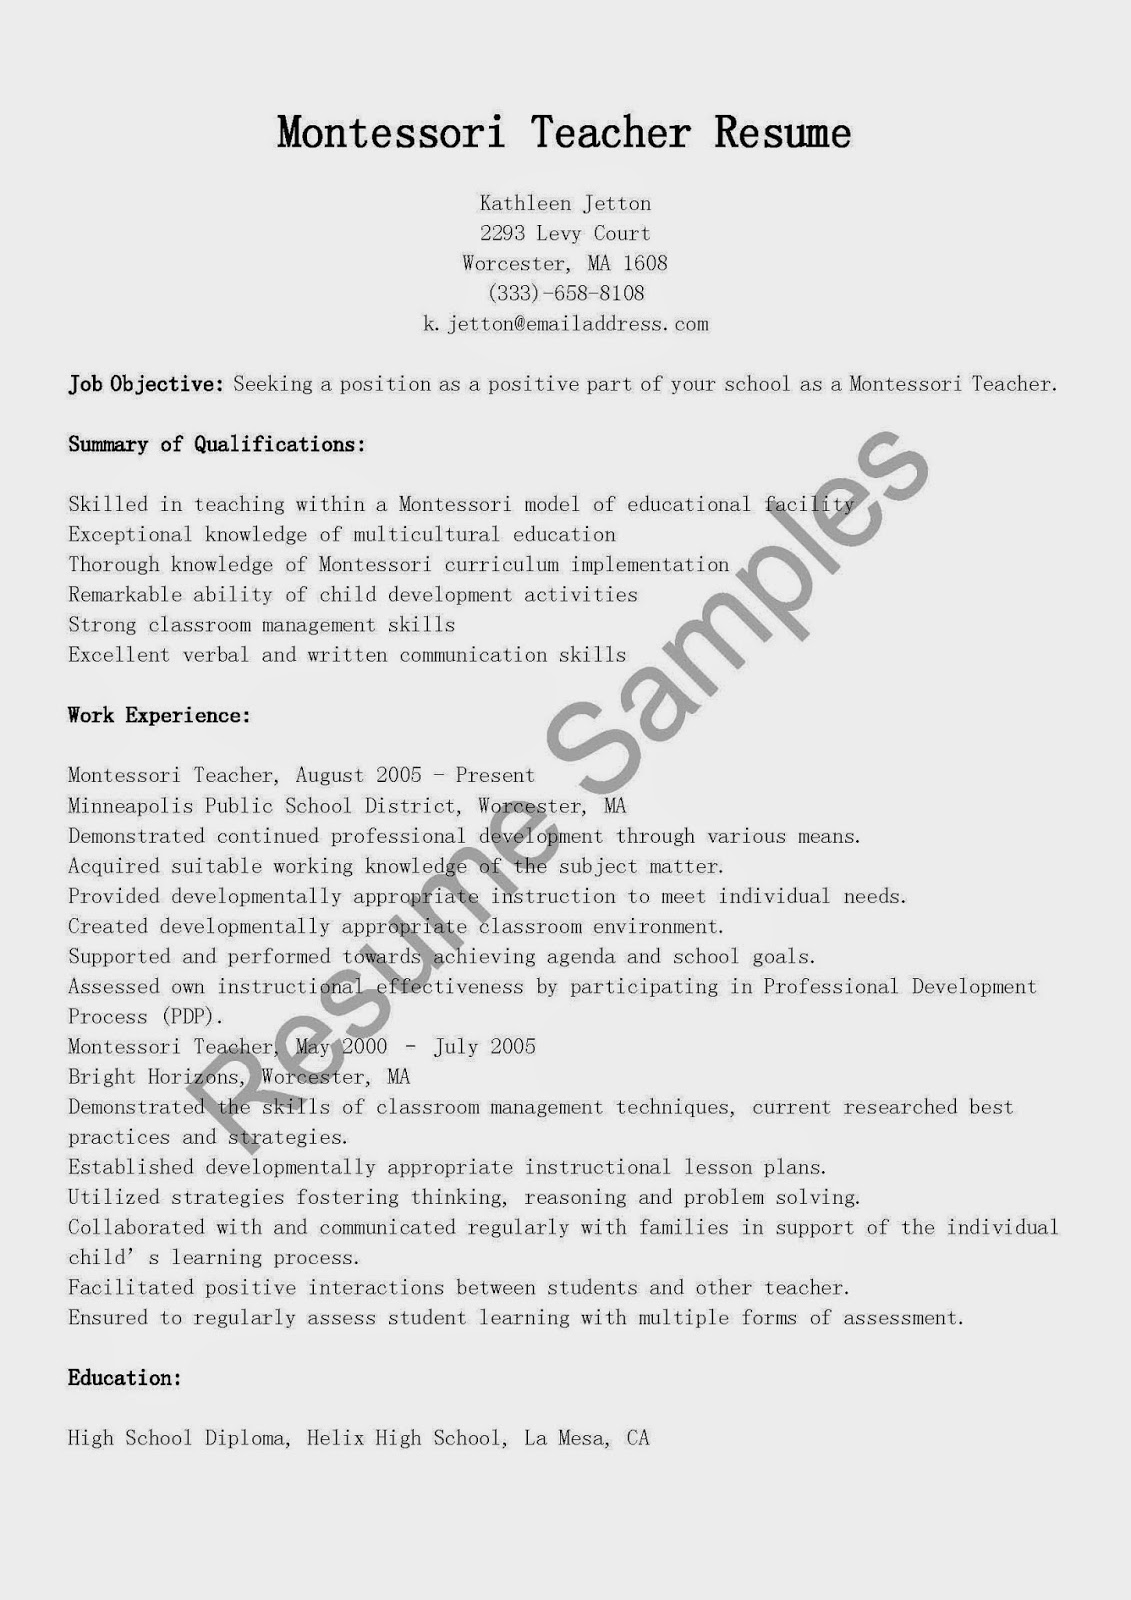 cpol resume builder cpol resume builder free software download cheap resume builder resume builder acting resume - Cpol Resume Builder